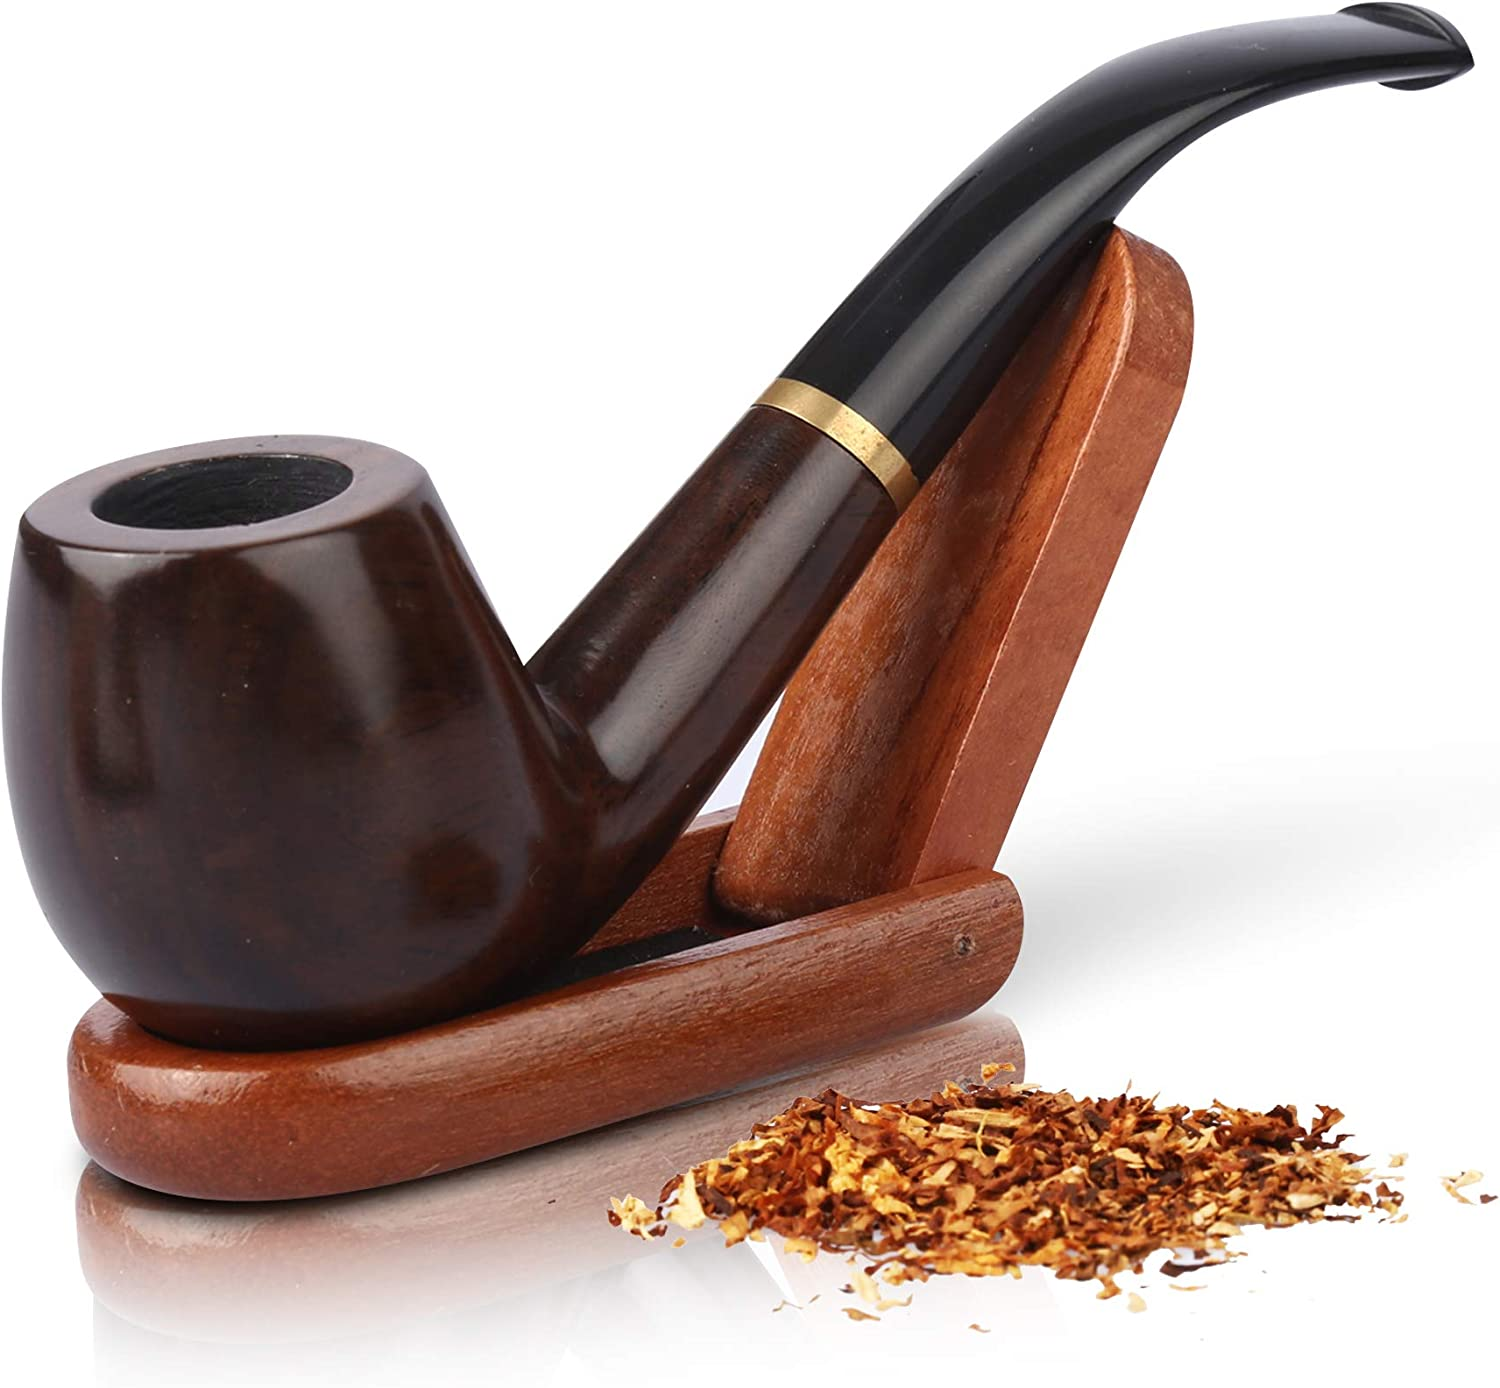 Tobacco Pipe - Smoking Pipe Kit - Stylish, Cool and Distinguished Wood Pipe Set for Beginner - The Perfect Gift for a Classy Gentleman